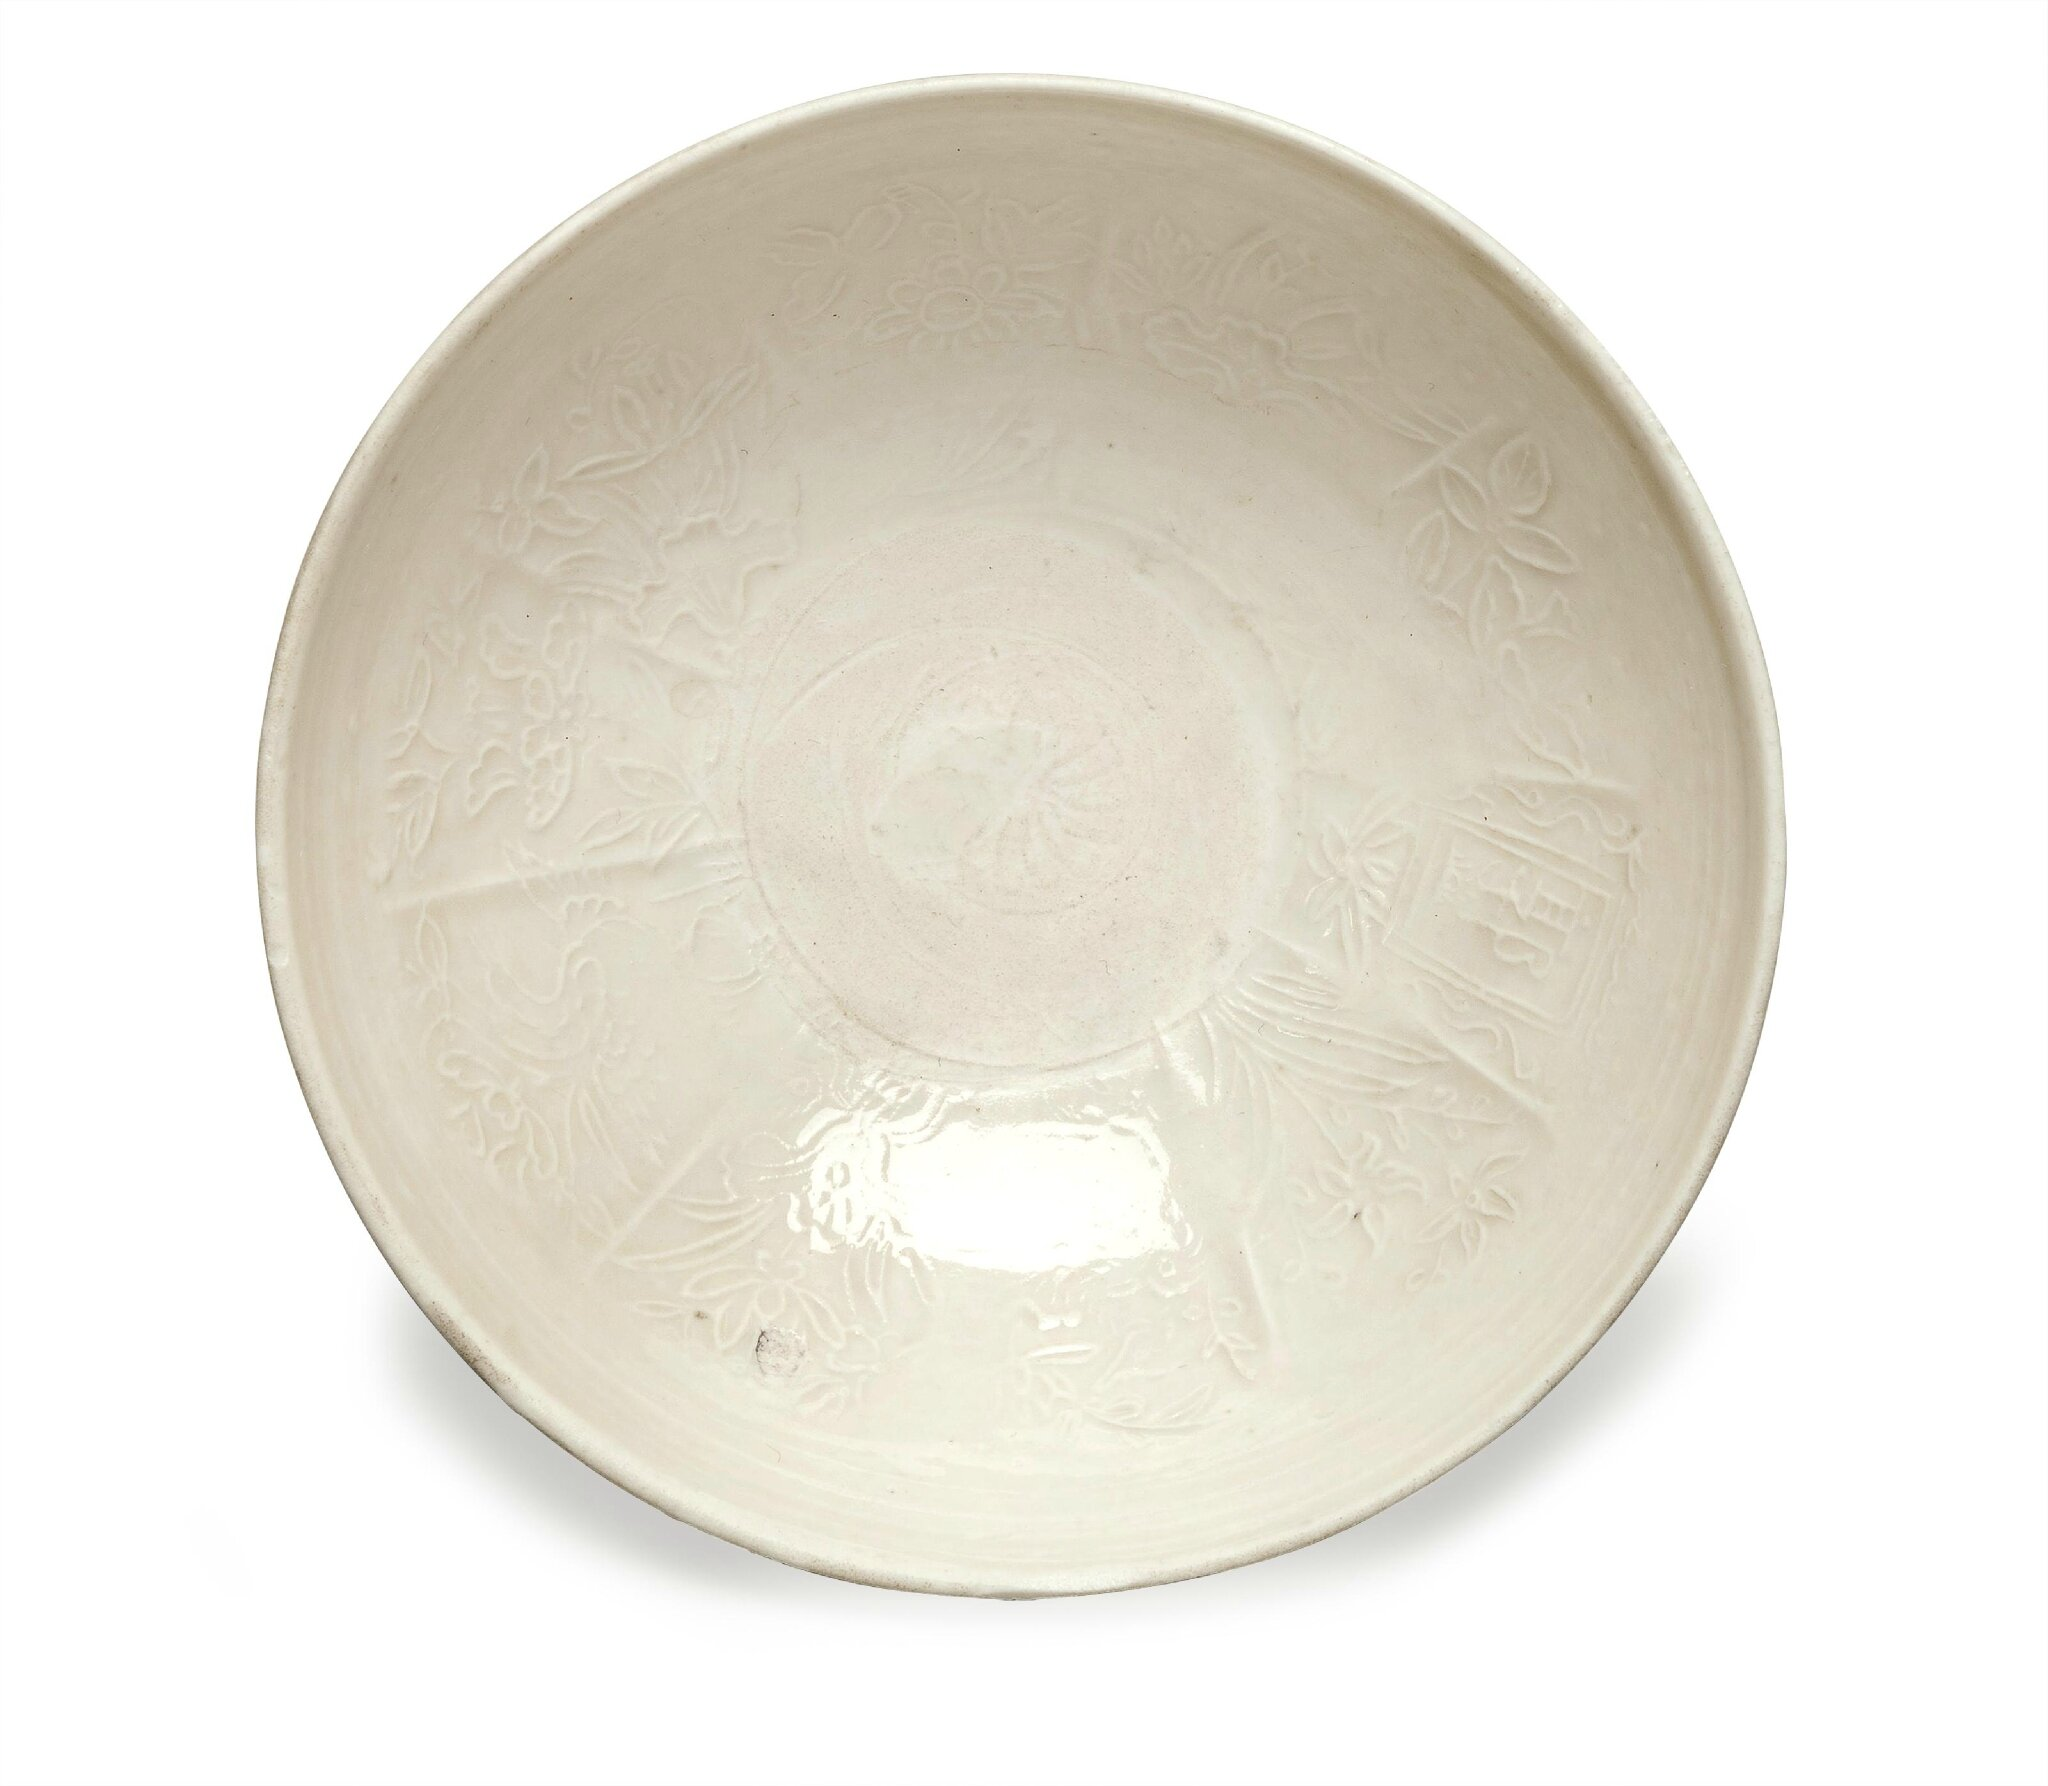 A small Ding-type molded deep bowl, Ming-Qing dynasty (1368-1911)